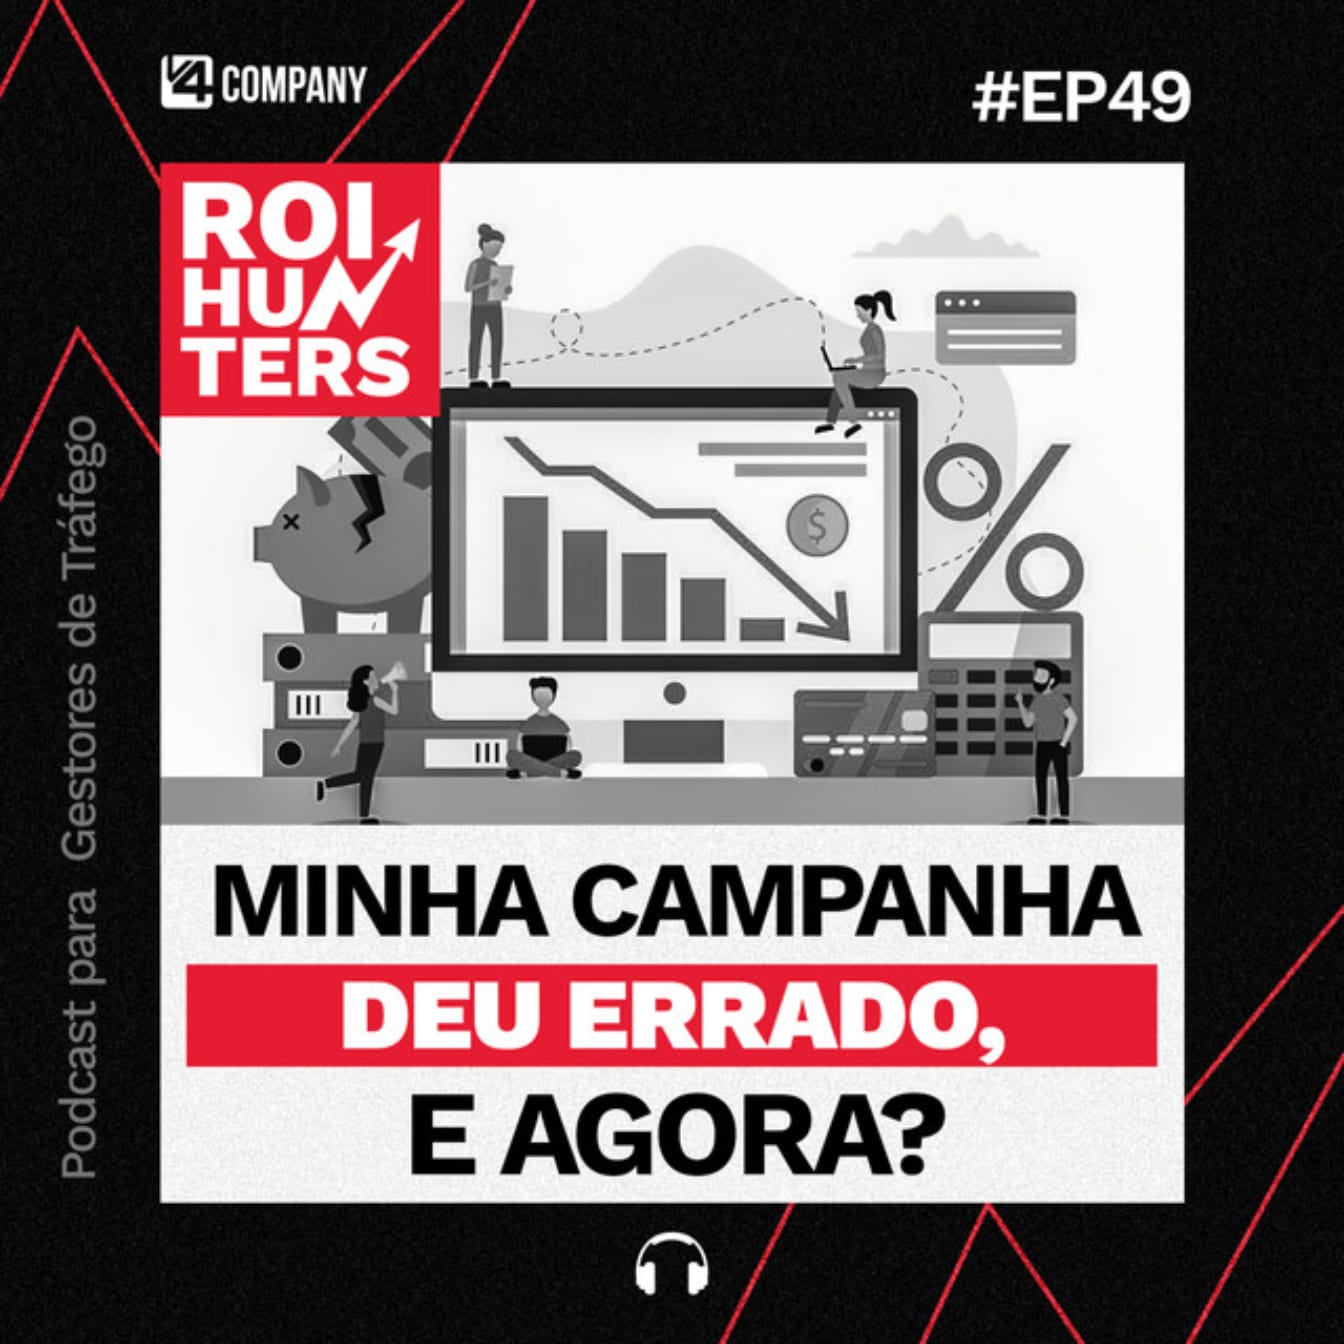 Campanha-v4-company-marketing-digital